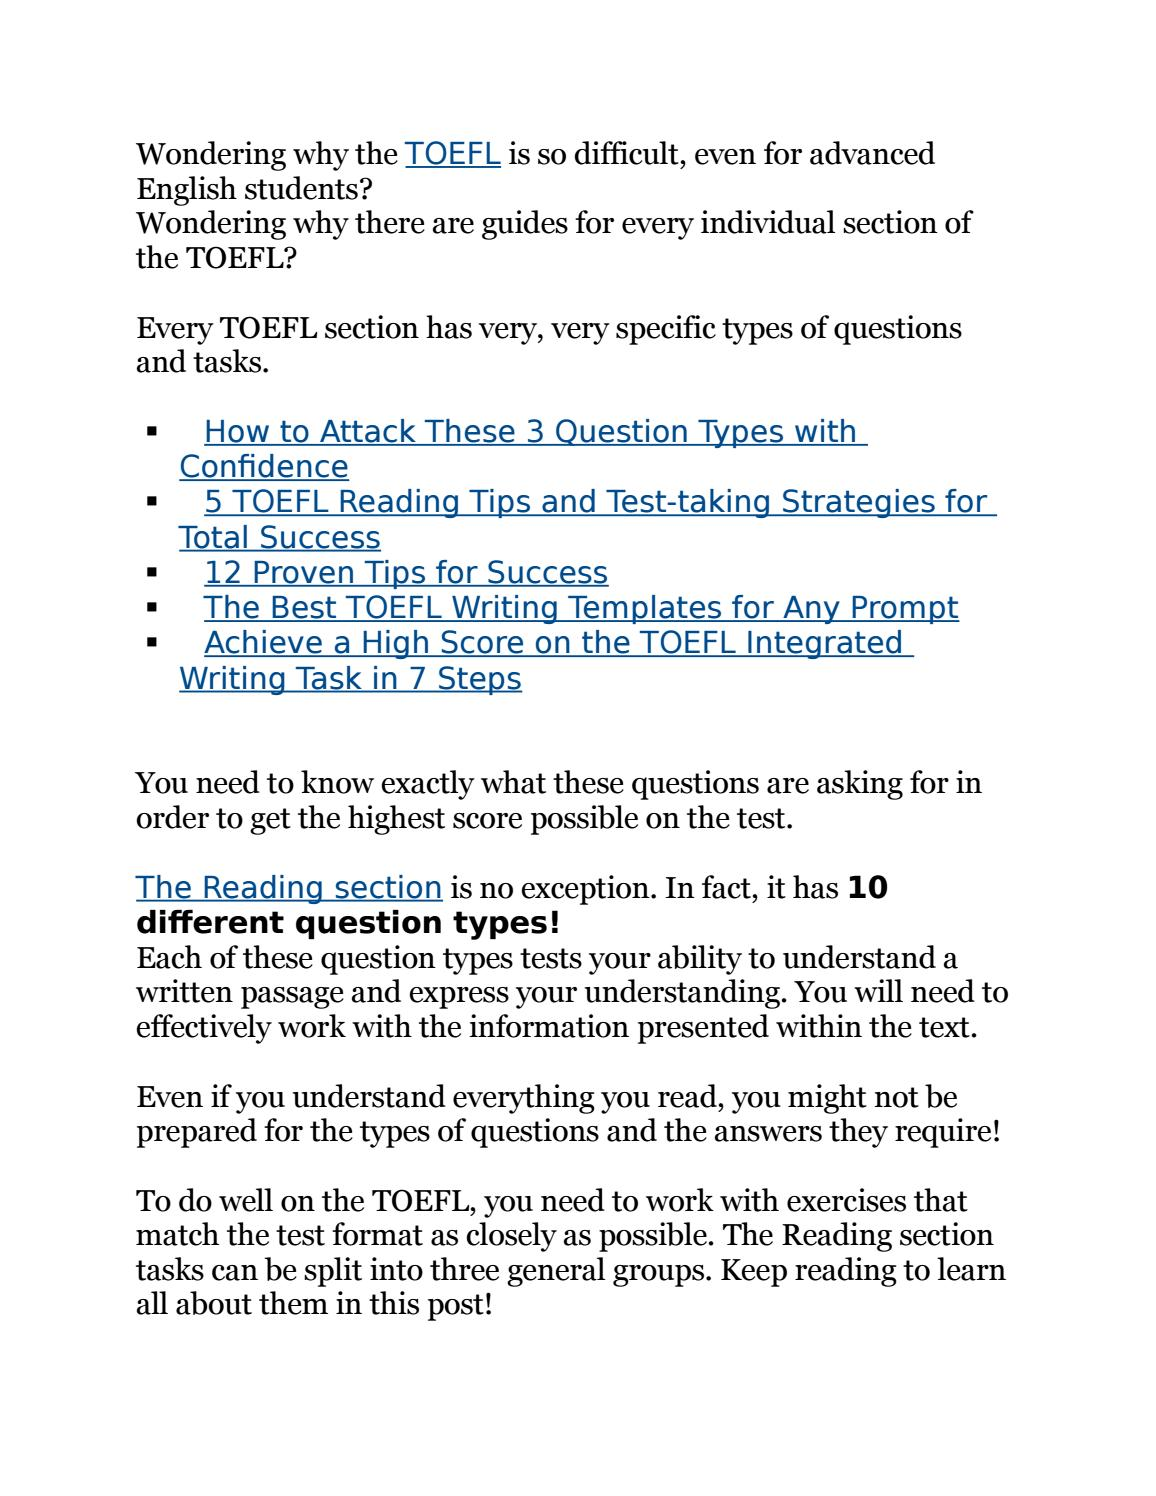 10 Types of TOEFL Reading Exercises You Must Master by Wiki